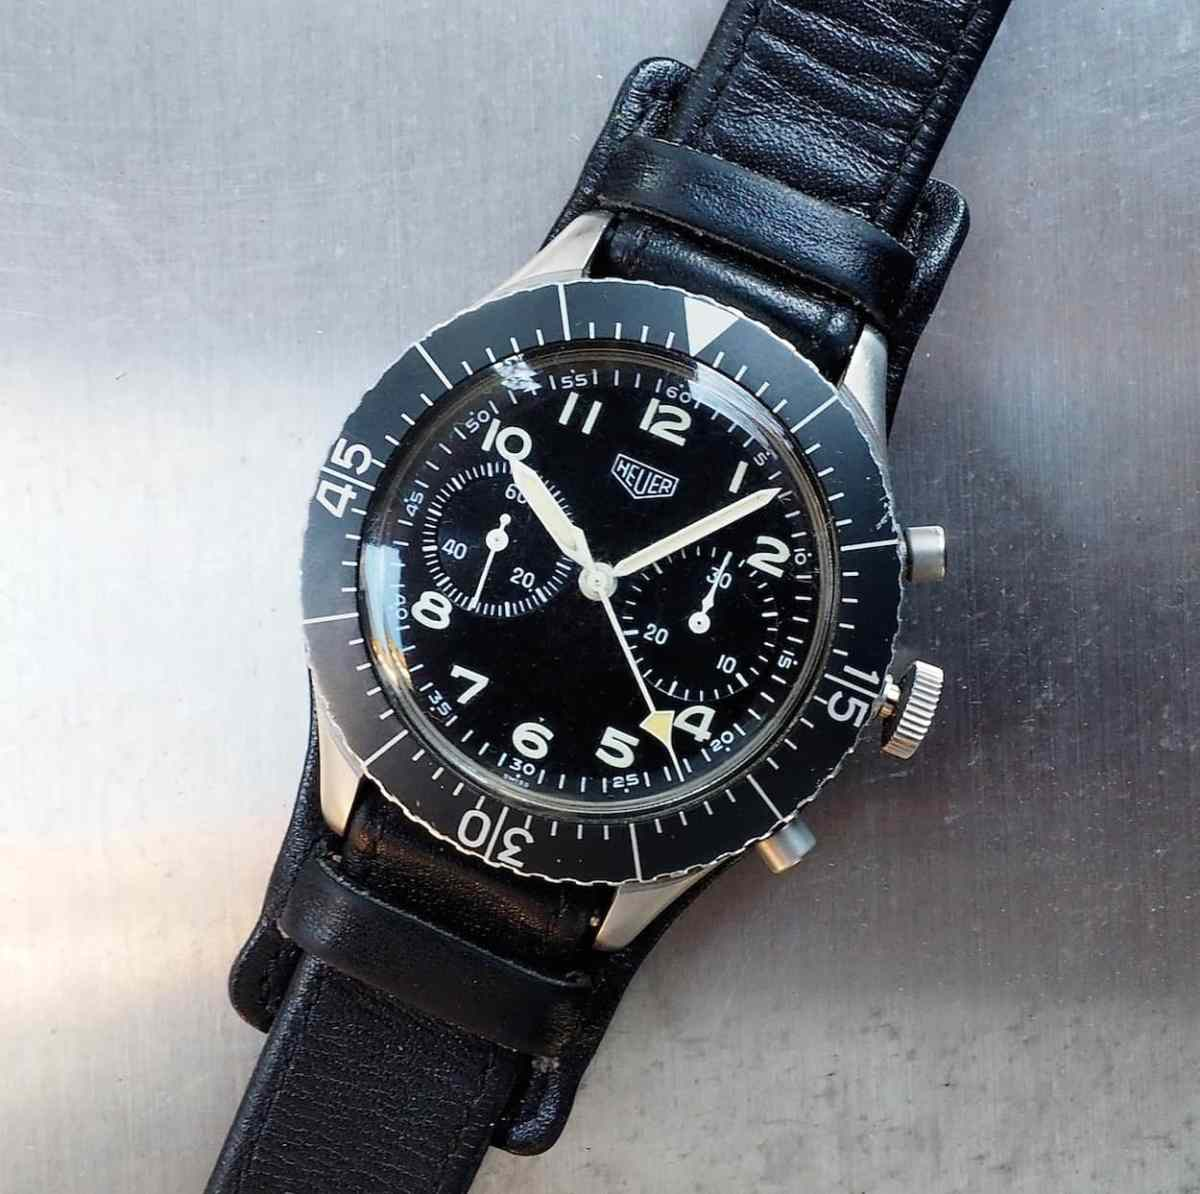 The Heuer Bund sports a large, bi-directonal bezel